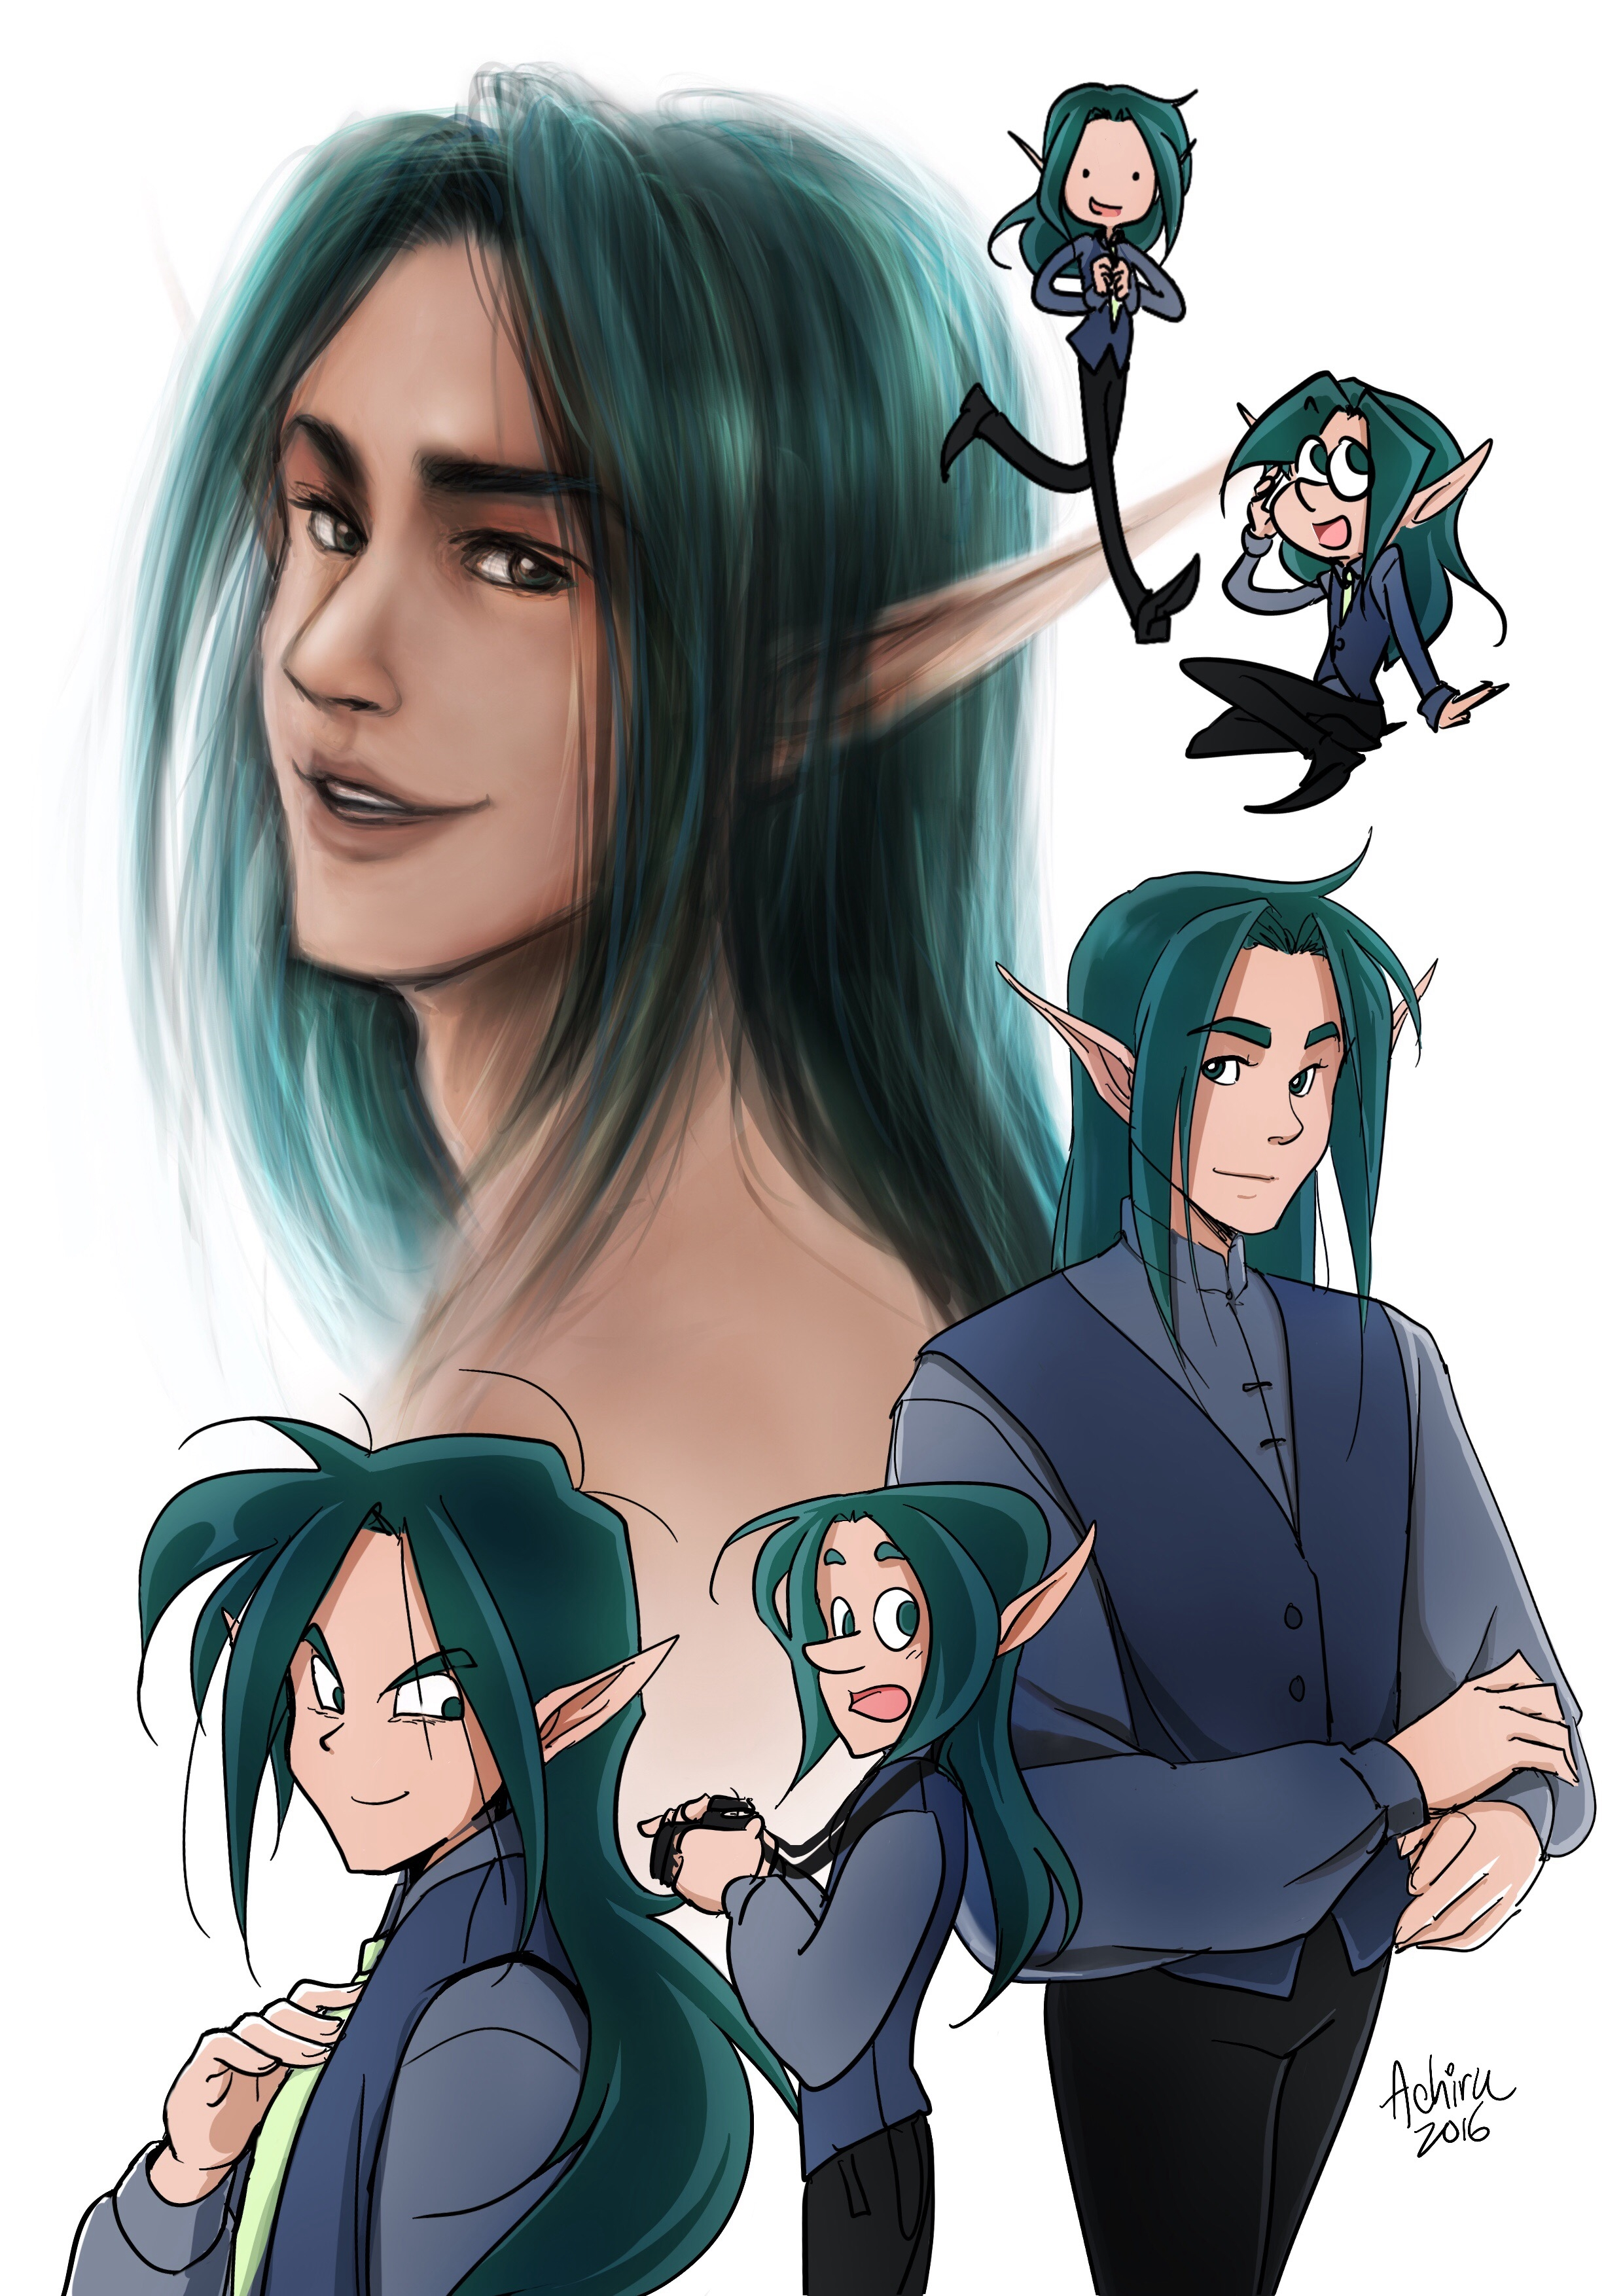 This is kaelim - He's Ria's first husband and also dead. He plays Zephyr in the Myth of Eros and Psyche.